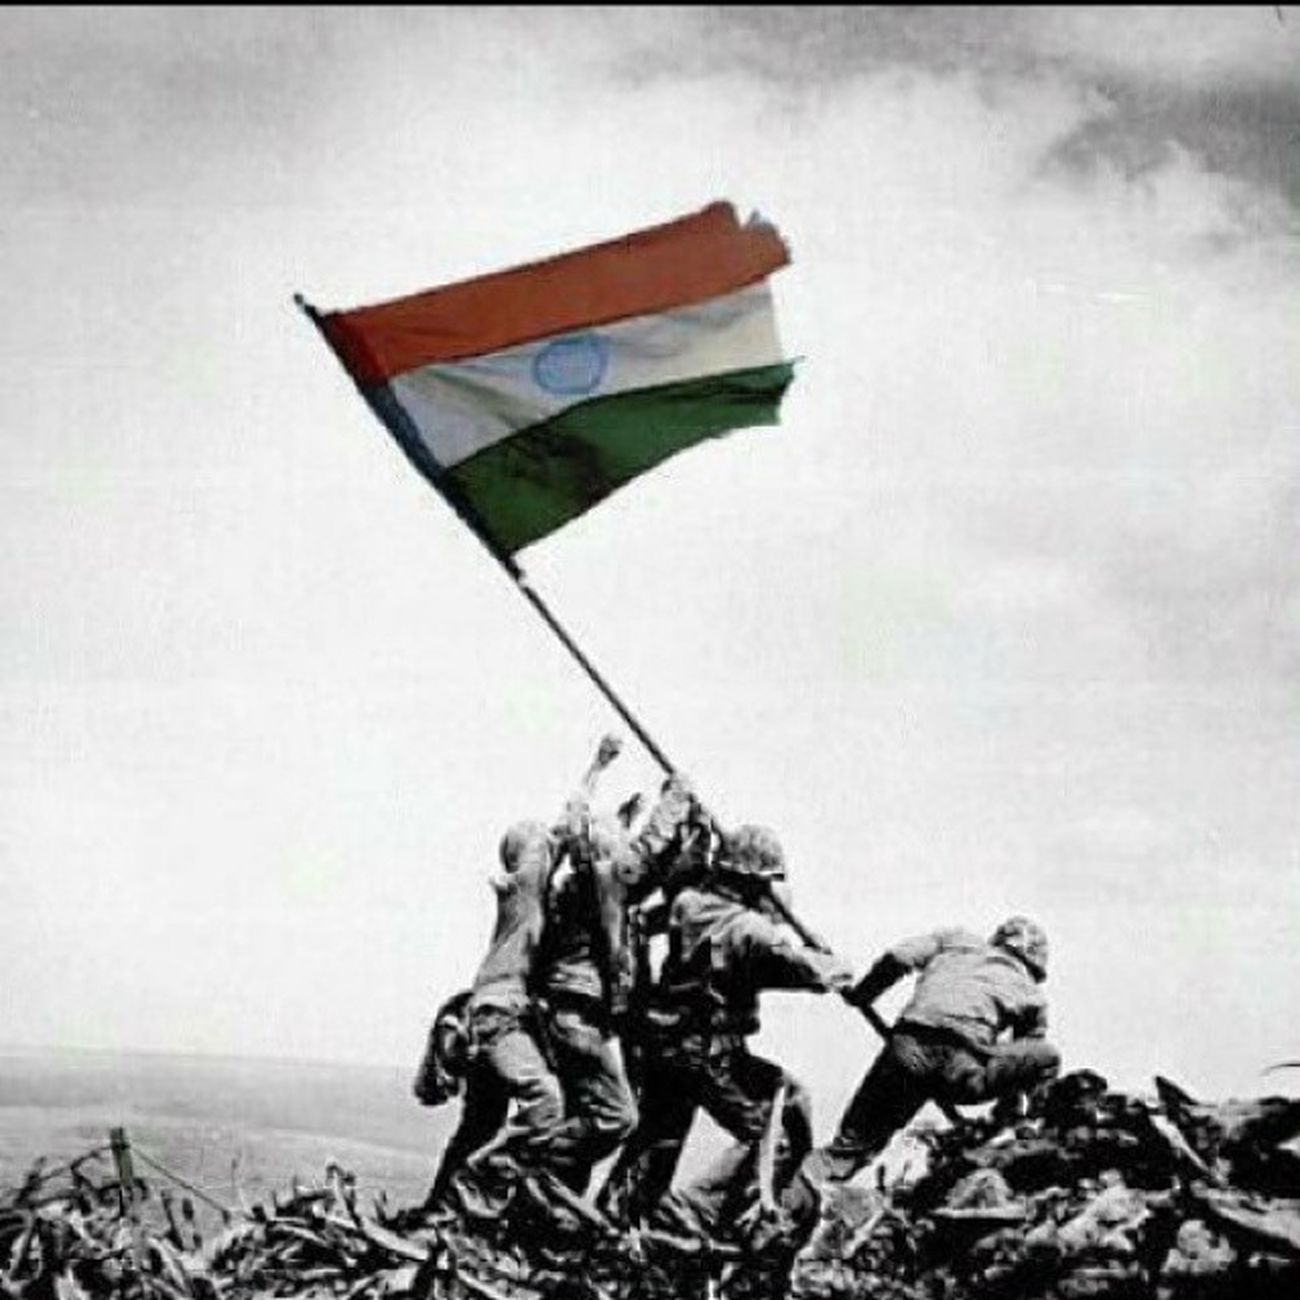 Happy independence day.... Thelegends Jawaan (soldier's) Whogavefreedomtous JaiHind Happyindendenceday Indianflag Tiranga 15august 68thceremony Gloryofindia Coloursofindia Tricolour Peace Freedom Bestoftheday Luv_india Patriotism VandeMataram Proudtobeindian Special Happy Instagood Instalike Followforfollow Likeforlike tyLikers happy